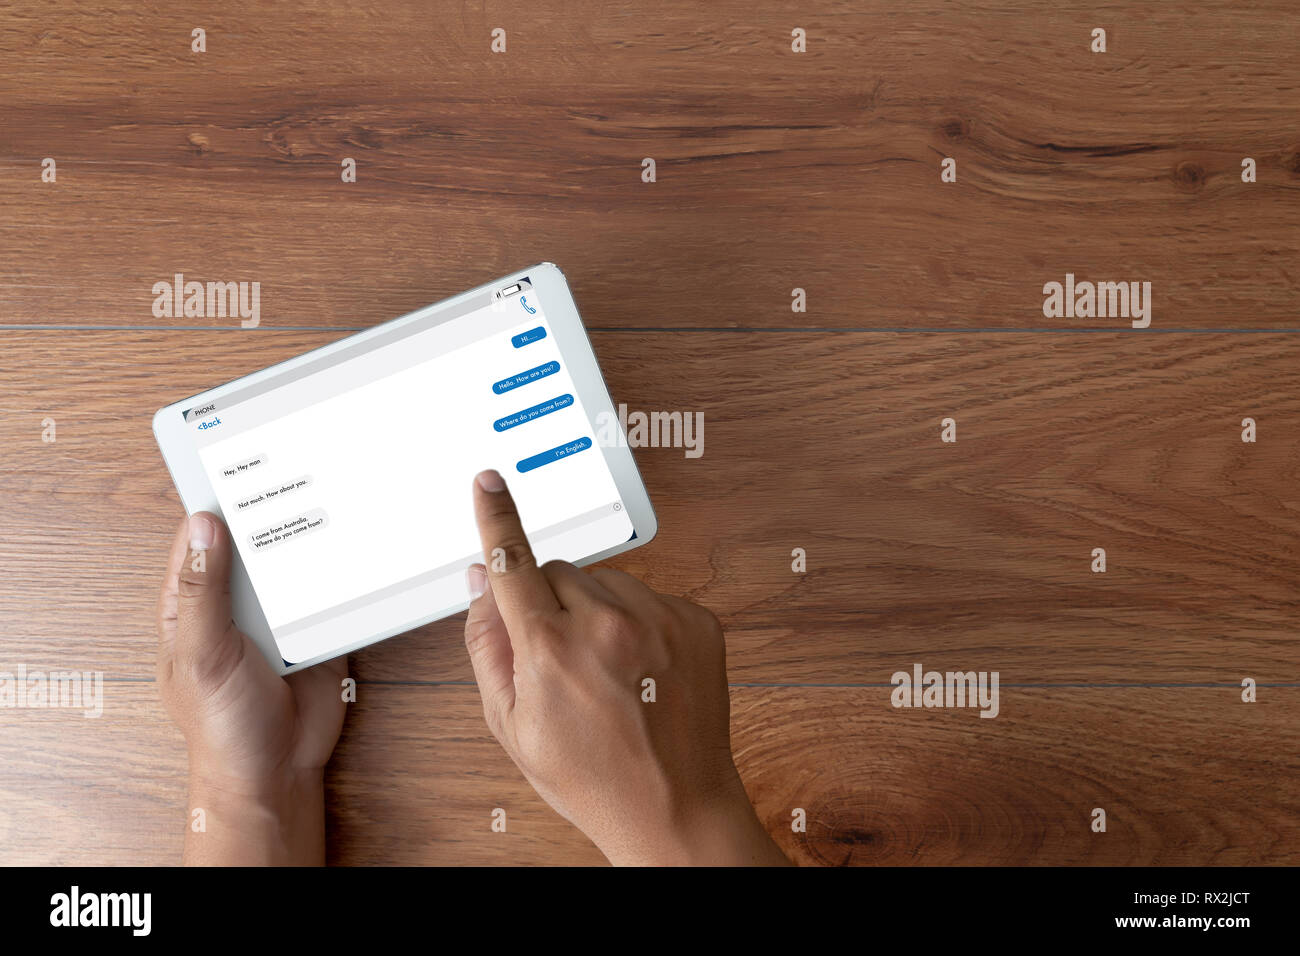 man using instant messaging app on mobile chatting with